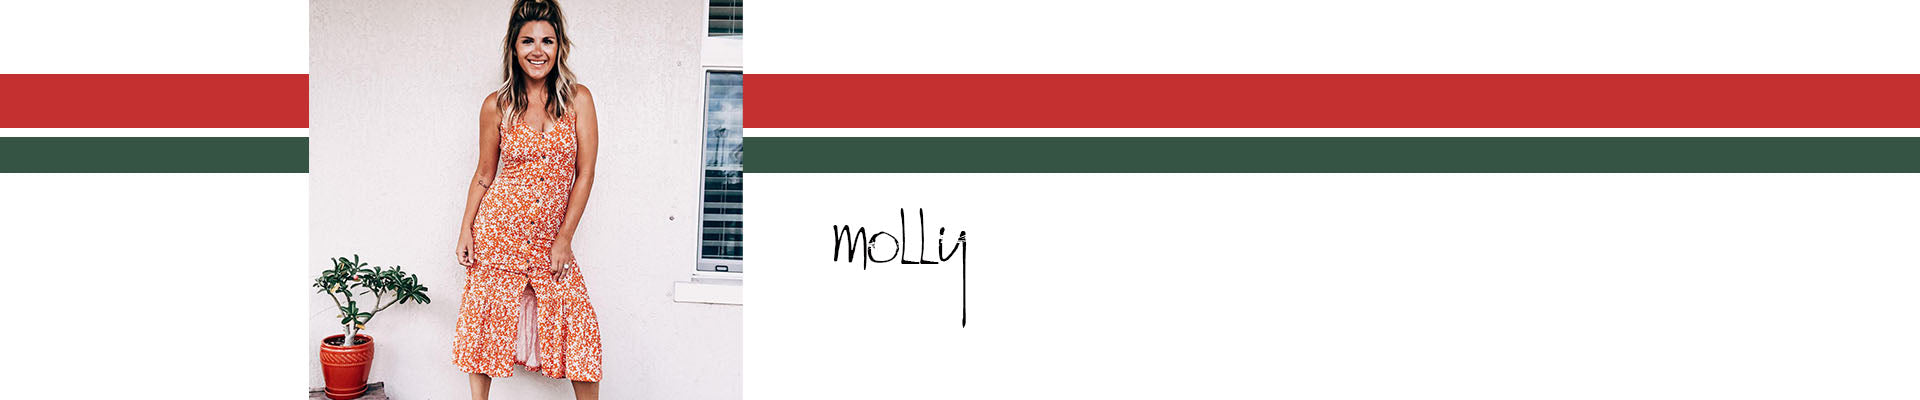 Molly's Collection